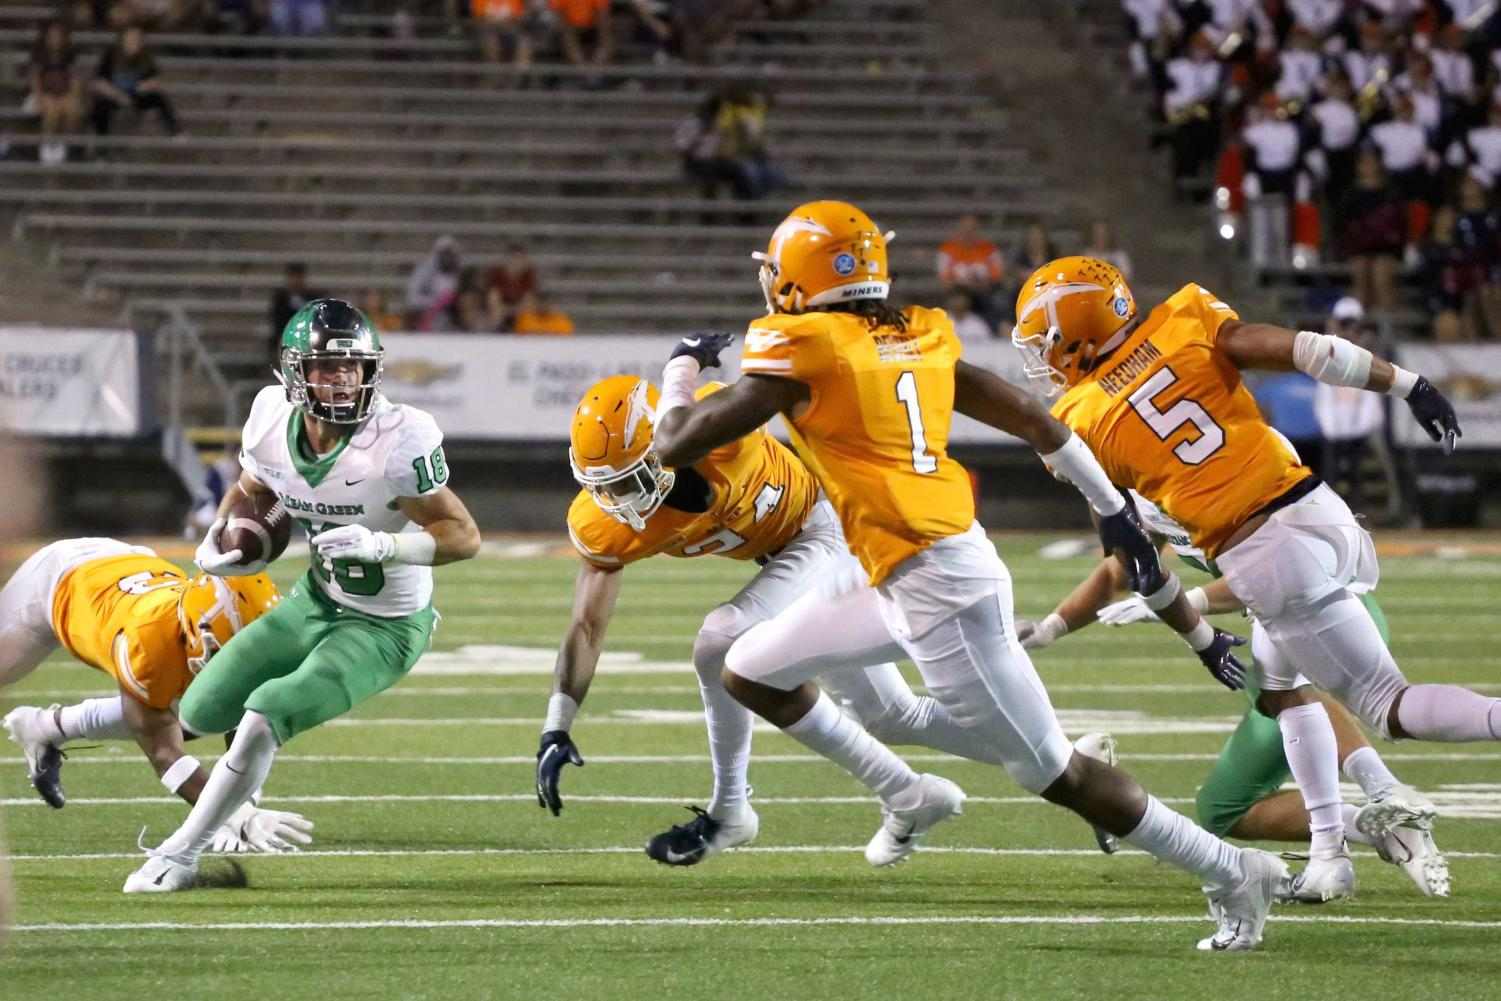 UNT+redshirt+sophomore+wide+receiver+Keegan+Brewer+attempts+to+make+the+play+against+the+UTEP+defenders.+